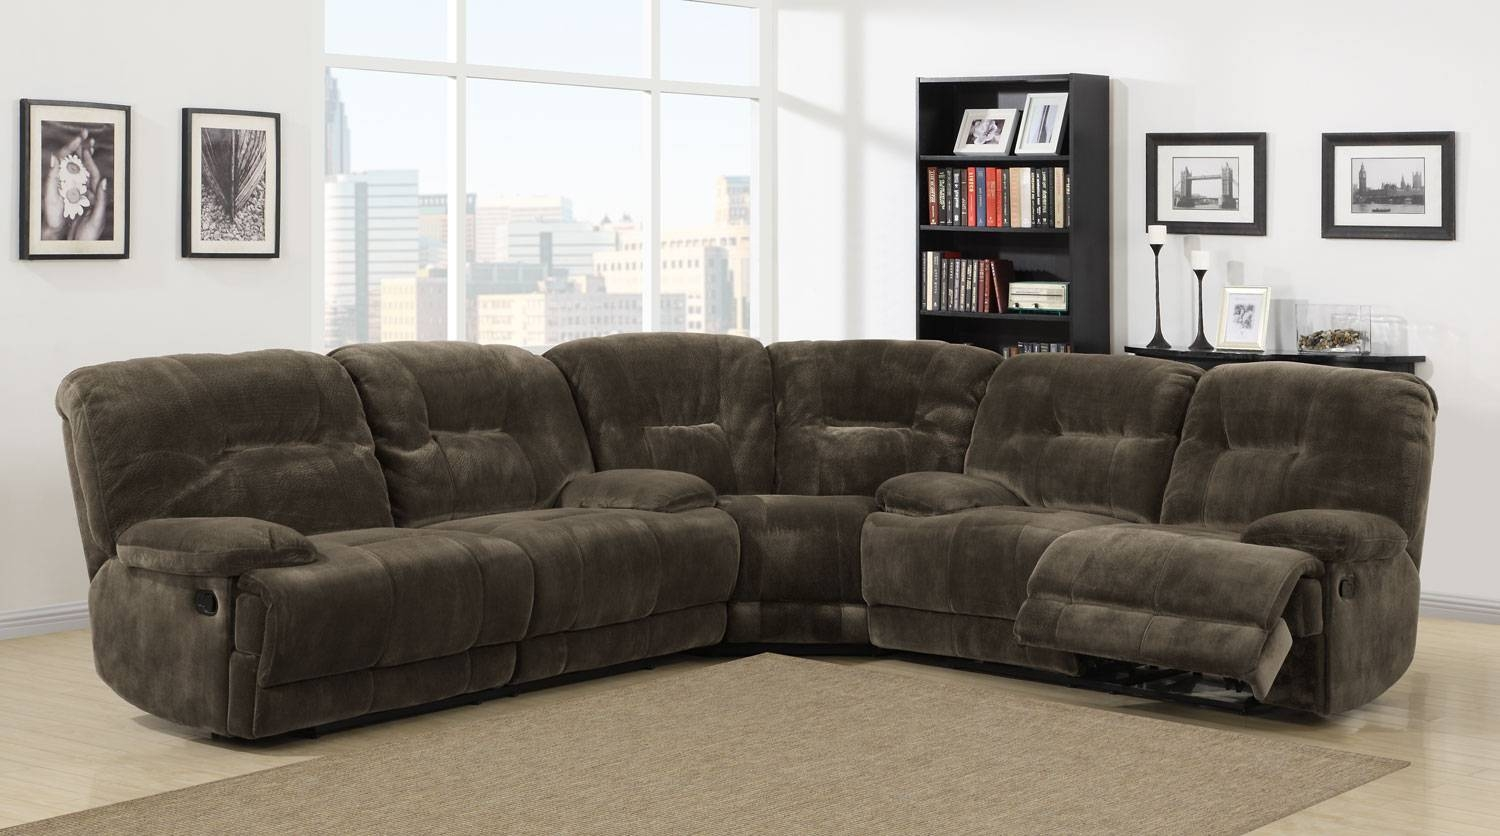 Homelegance Geoffrey Reclining Sectional Sofa Set - Chocolate with Recliner Sectional Sofas (Image 18 of 30)